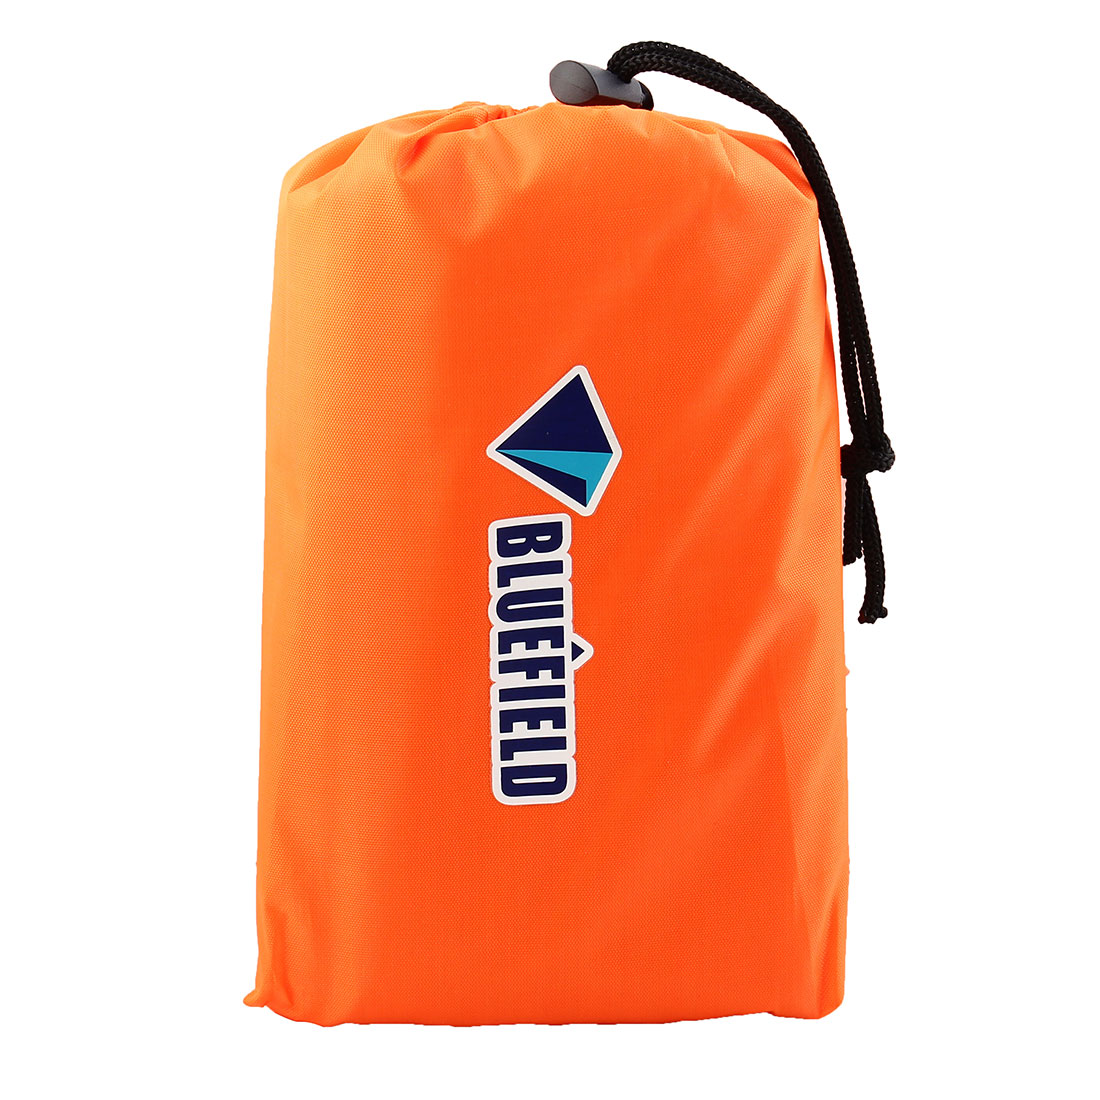 Bluefield Authorized Hiking Outdoor Water Resistant Picnic Blanket Foldable Camping Mat Pad Orange